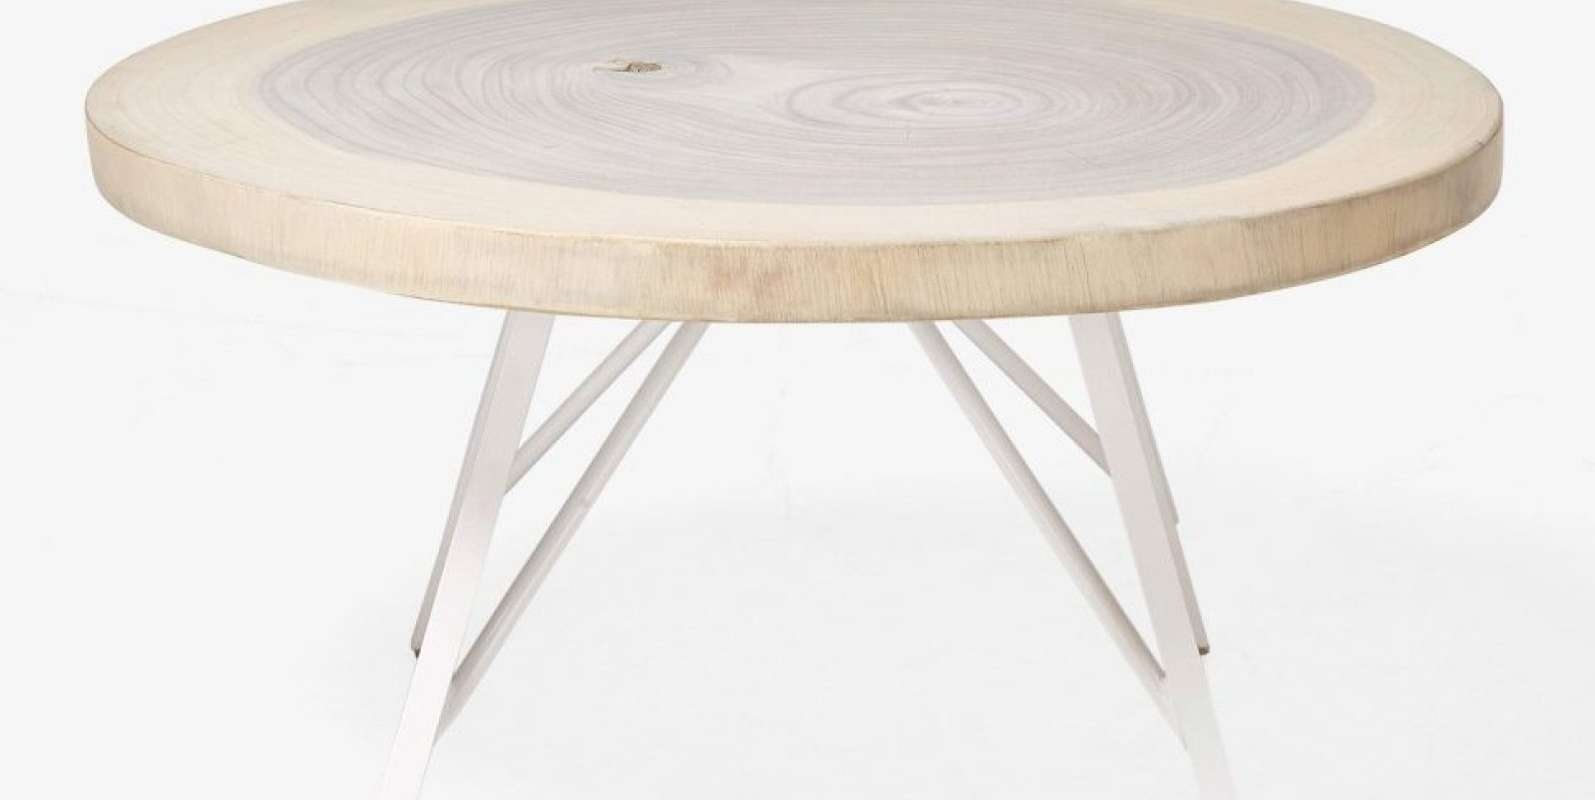 Elegant Beech Coffee Tables Uk – Mediasupload Within 2017 Round Beech Coffee Tables (View 19 of 20)